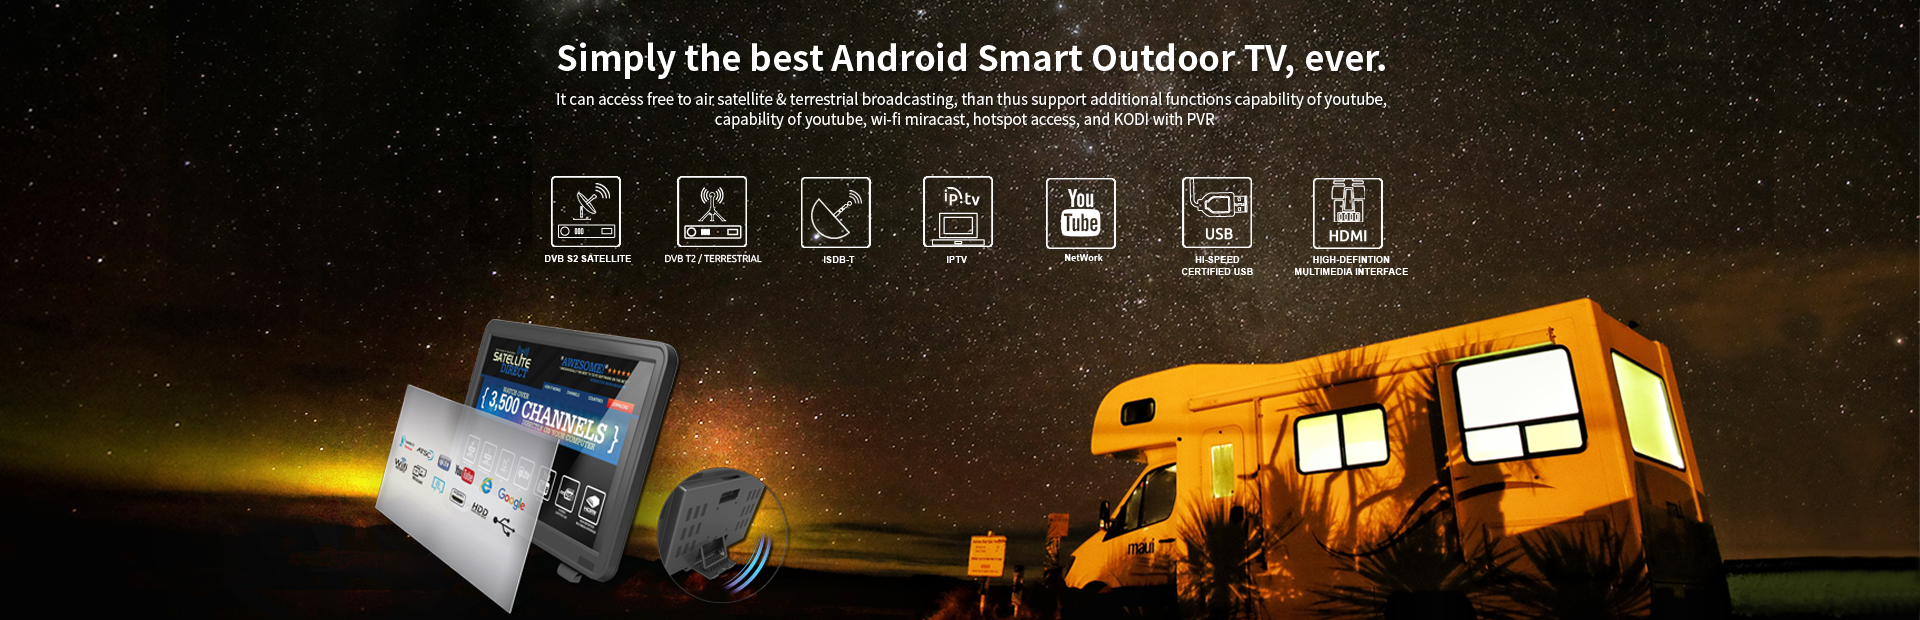 Simply the best Android Smart Outdoor TV, ever.